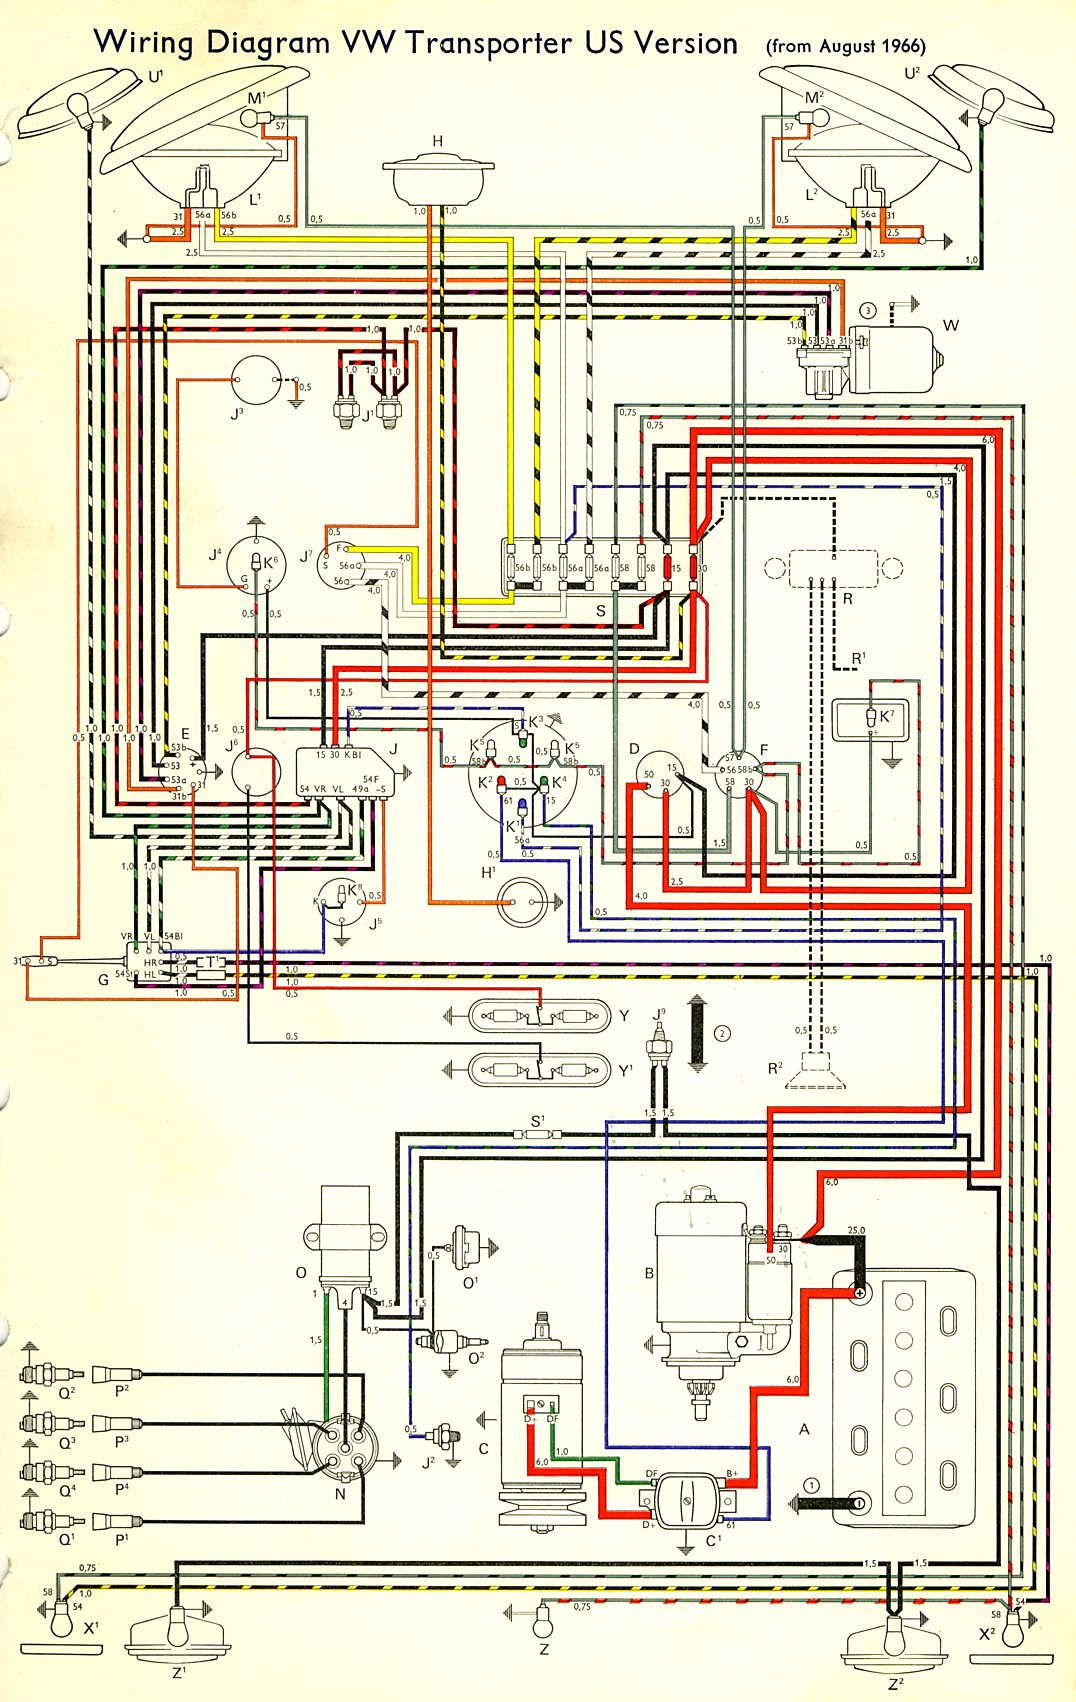 bus_67_USA 67 vw bus wiring harness 71 vw wiring harness \u2022 wiring diagrams Wiring Harness Diagram at creativeand.co